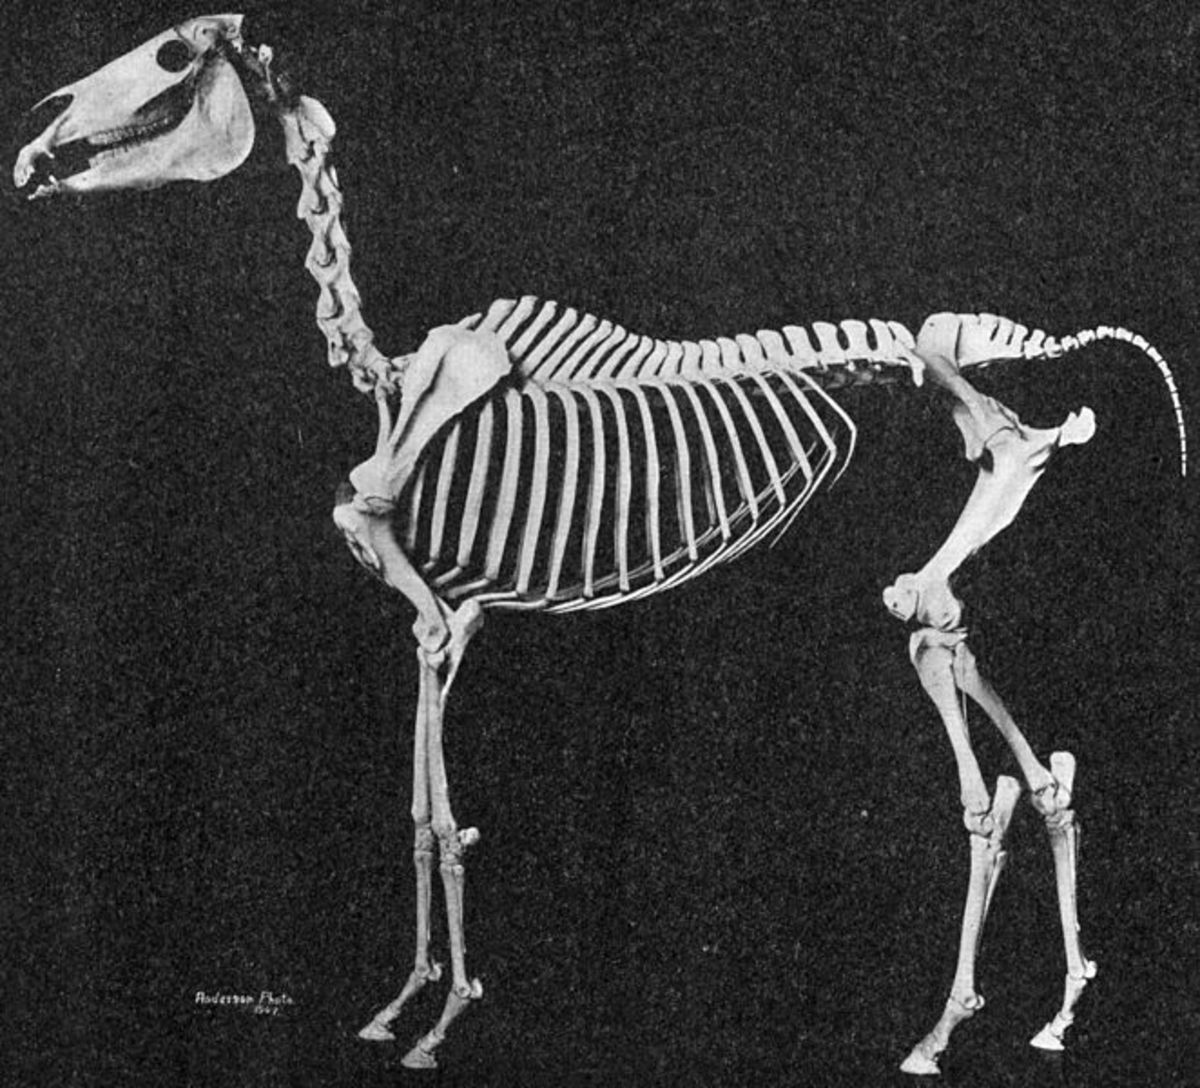 This skeleton shows the underlying structure of breed characteristics including short back, high-set tail, the distinction between level croup and well-angulated hip. This specimen also has only five lumbar vertebrae.